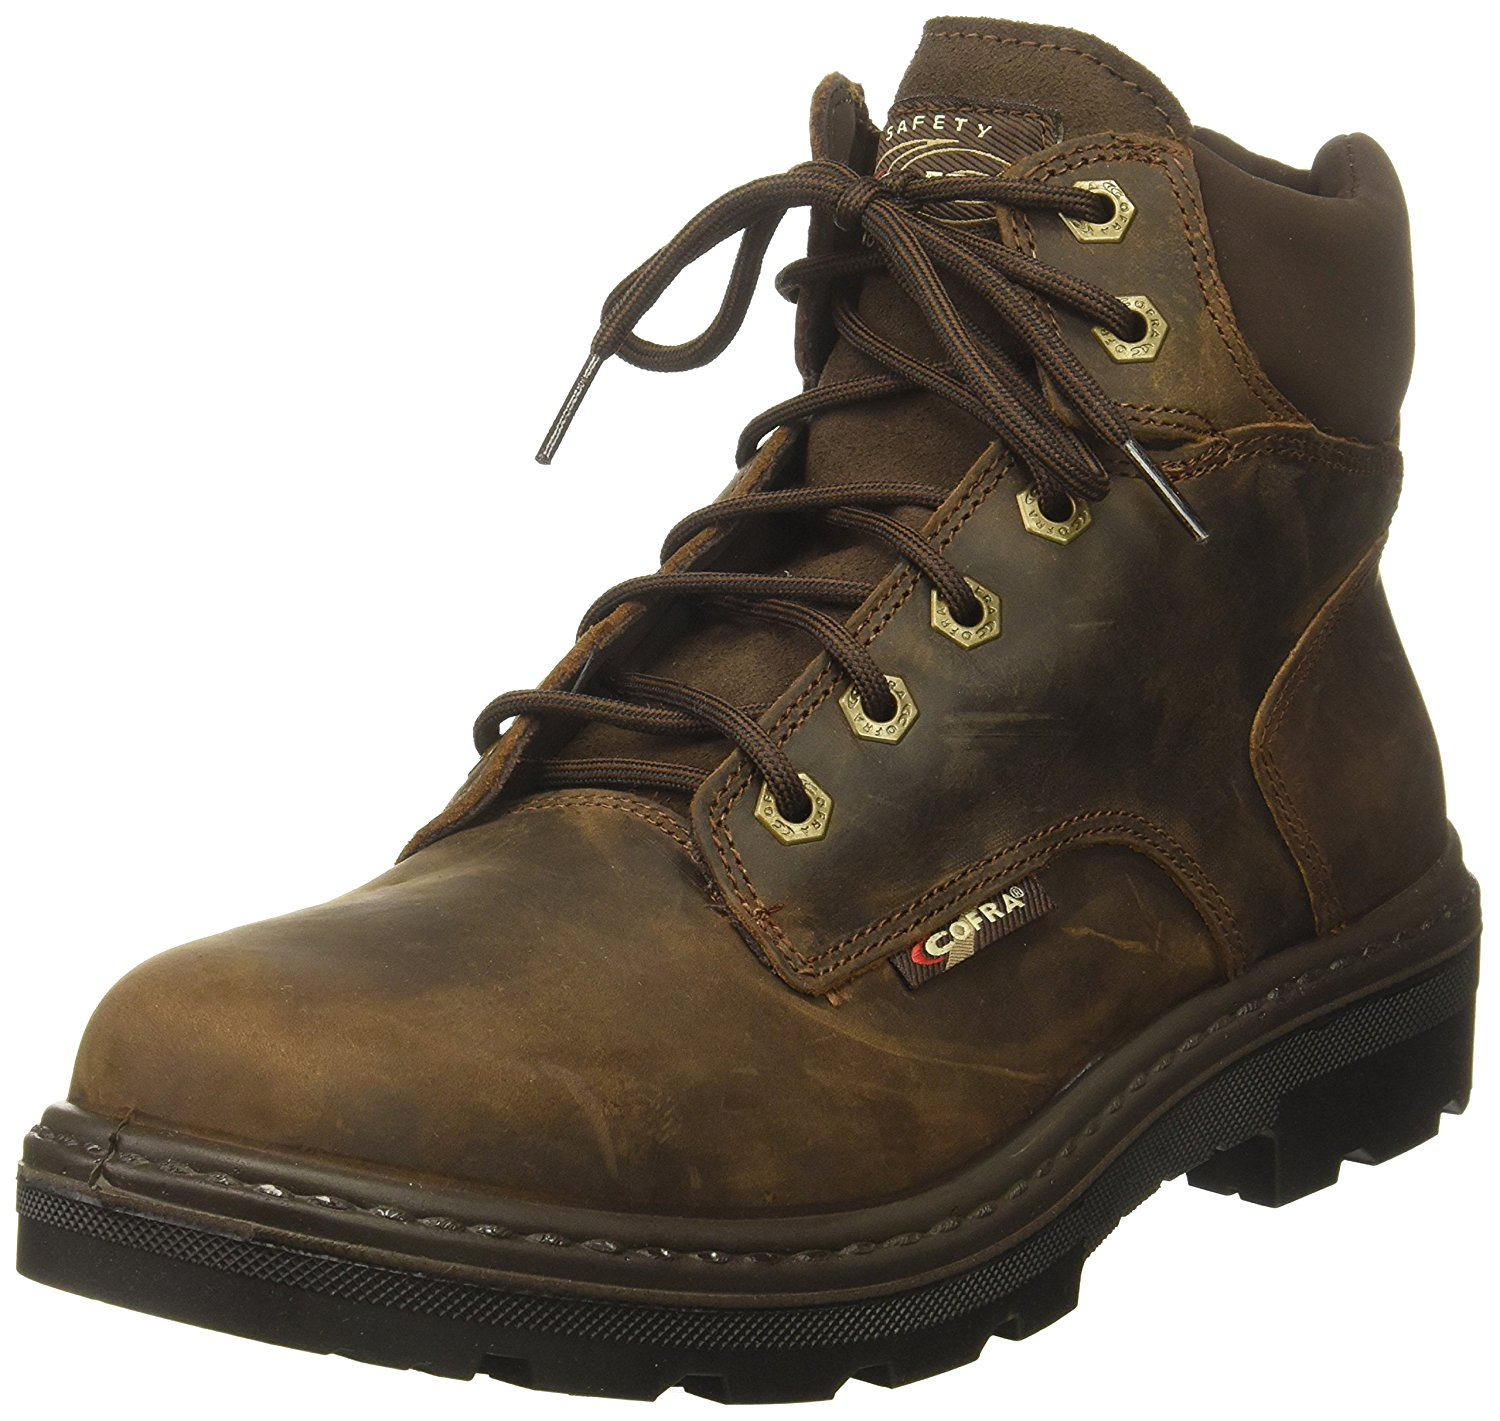 Cofra Wetland S3 Safety Steel toecap midsole Water resistant Black Lace up Boots